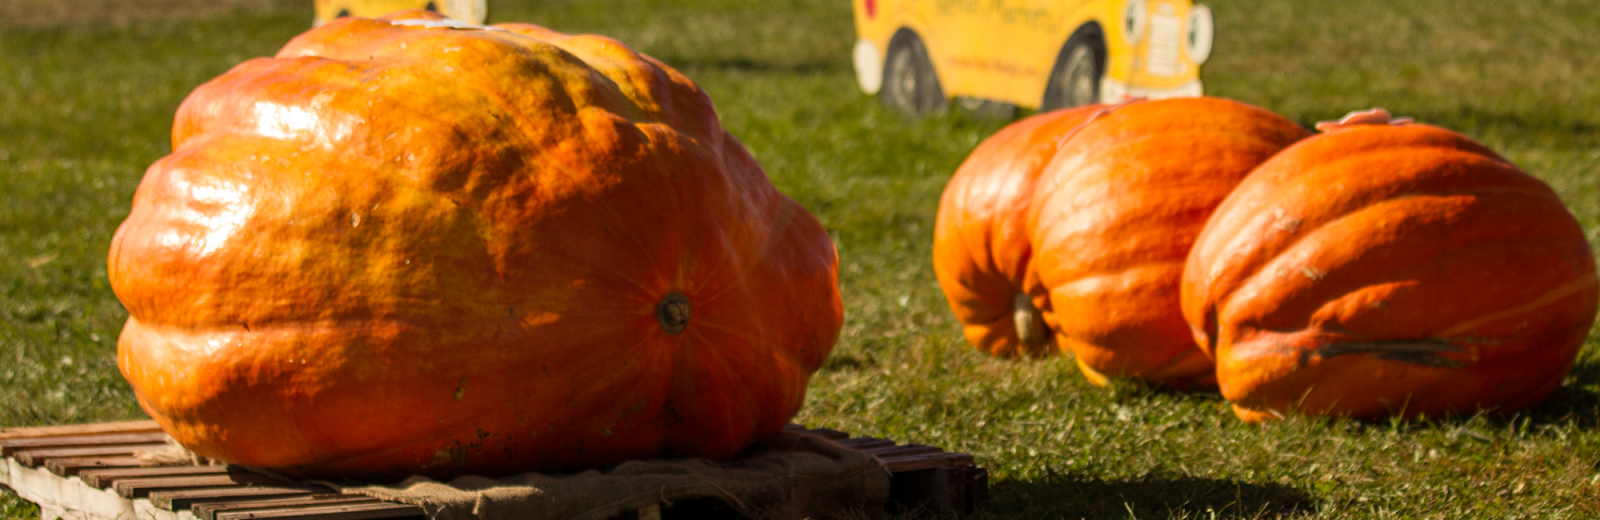 nieman-markets-large-pumpkins